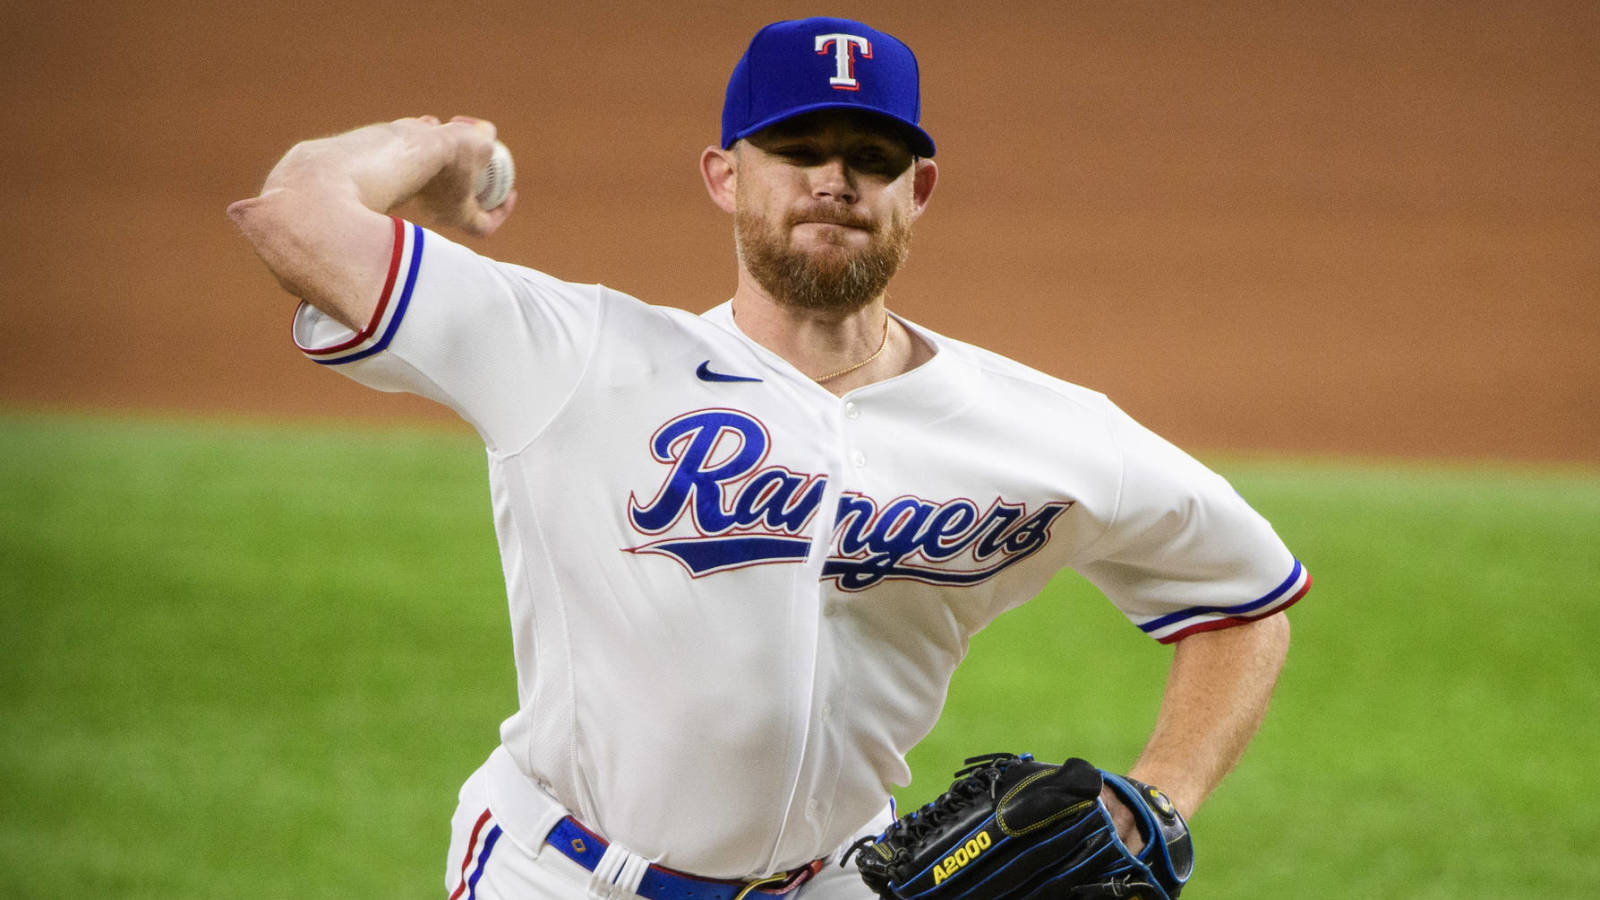 Rangers' Ian Kennedy heads to IL with hamstring strain